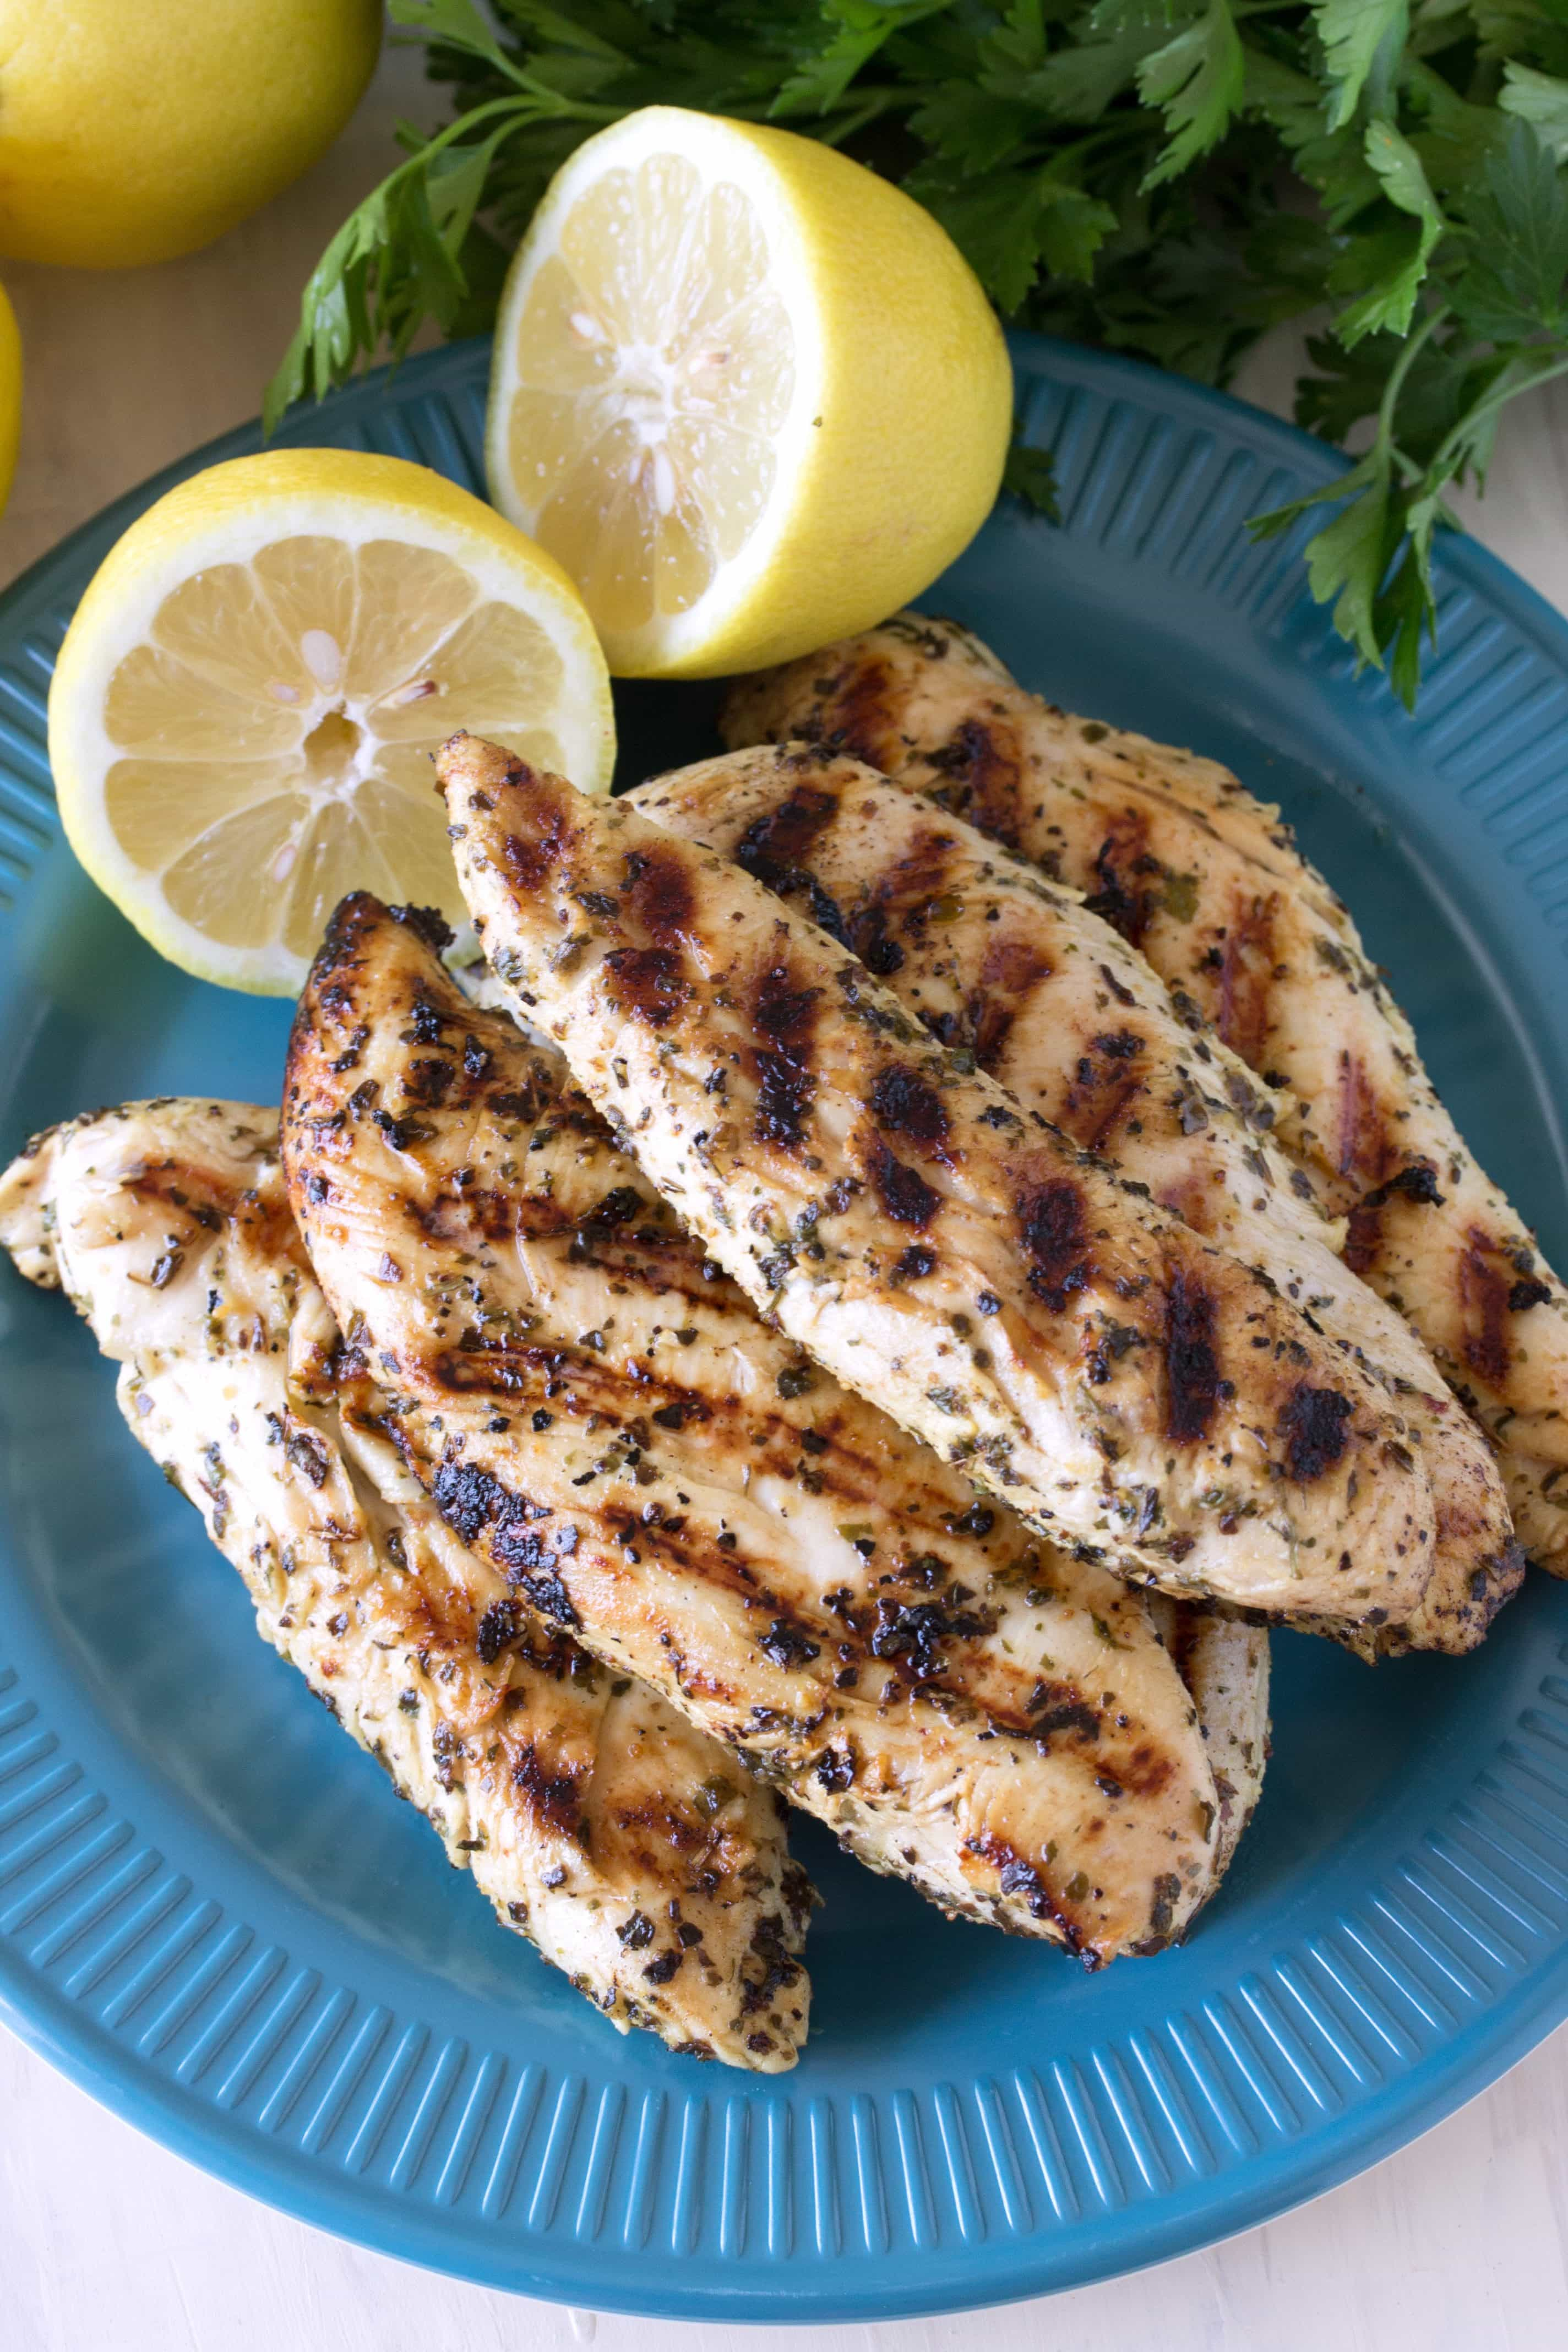 Easy Chicken Recipes. These easy chicken recipes have been passed from around from our family's recipe boxes to friends and other family. They're home cooked favorites that folks gather around the table and linger a bit longer for.